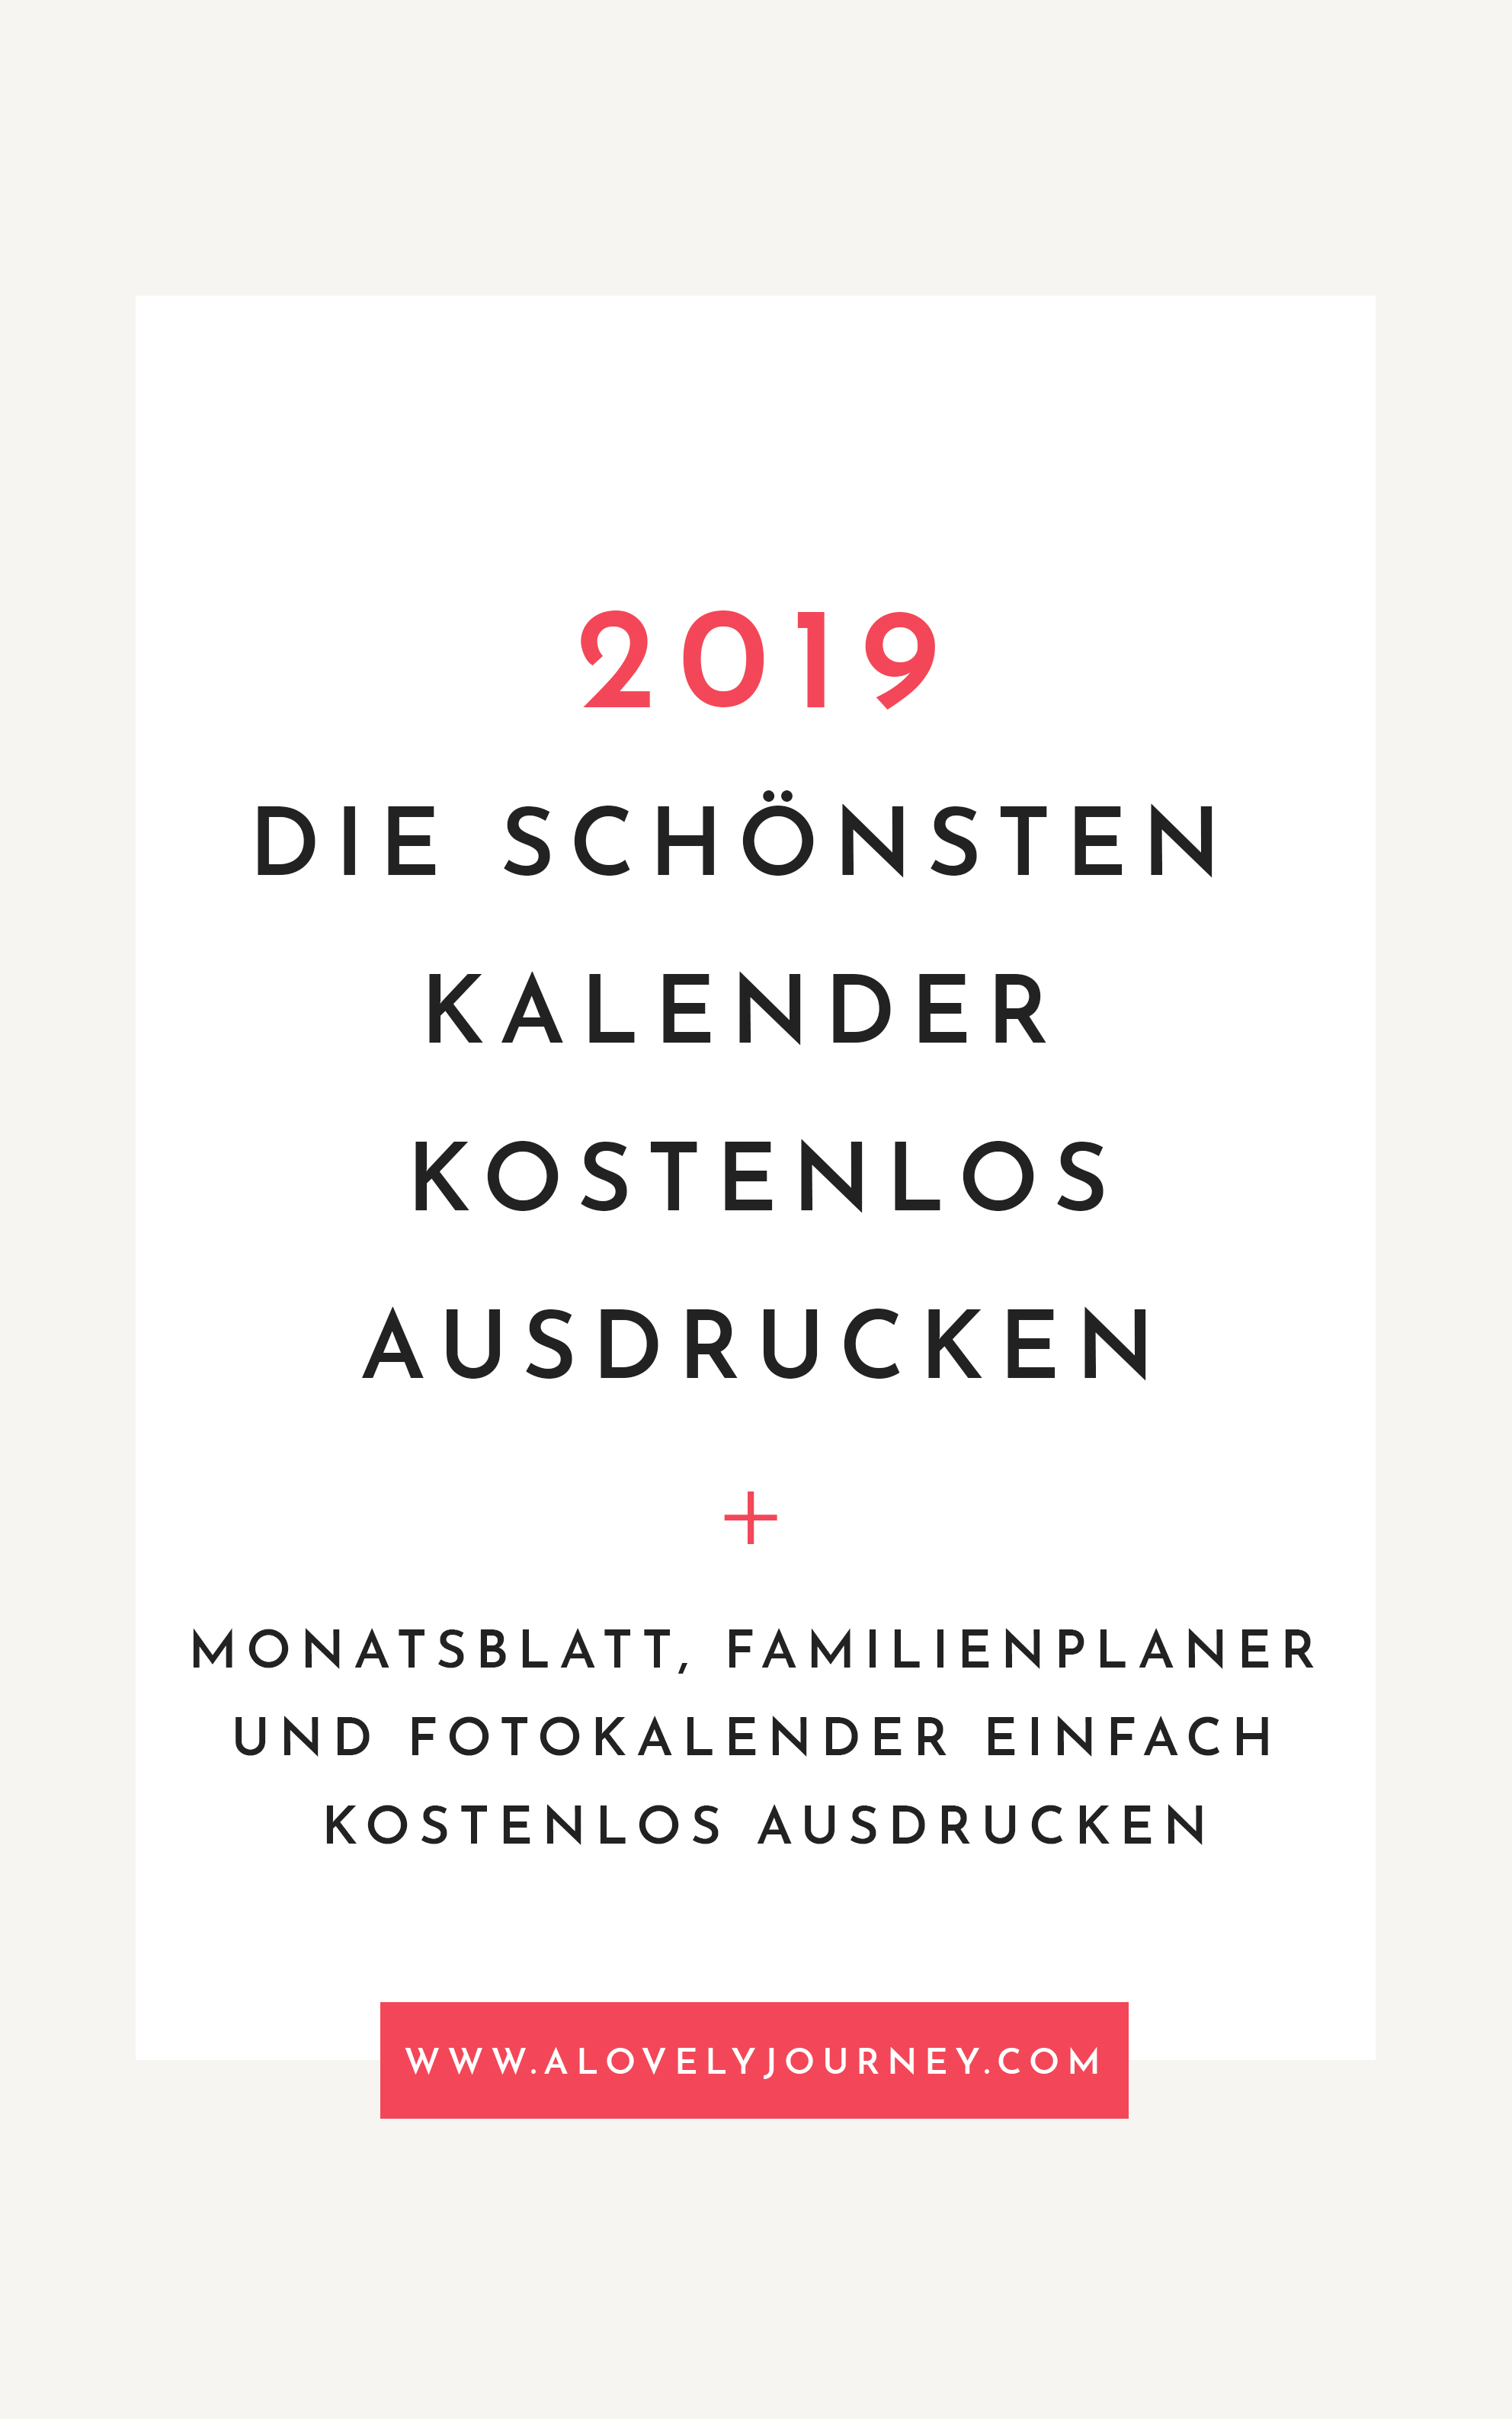 organisiert die sch nsten kalender 2019 kostenlos ausducken. Black Bedroom Furniture Sets. Home Design Ideas